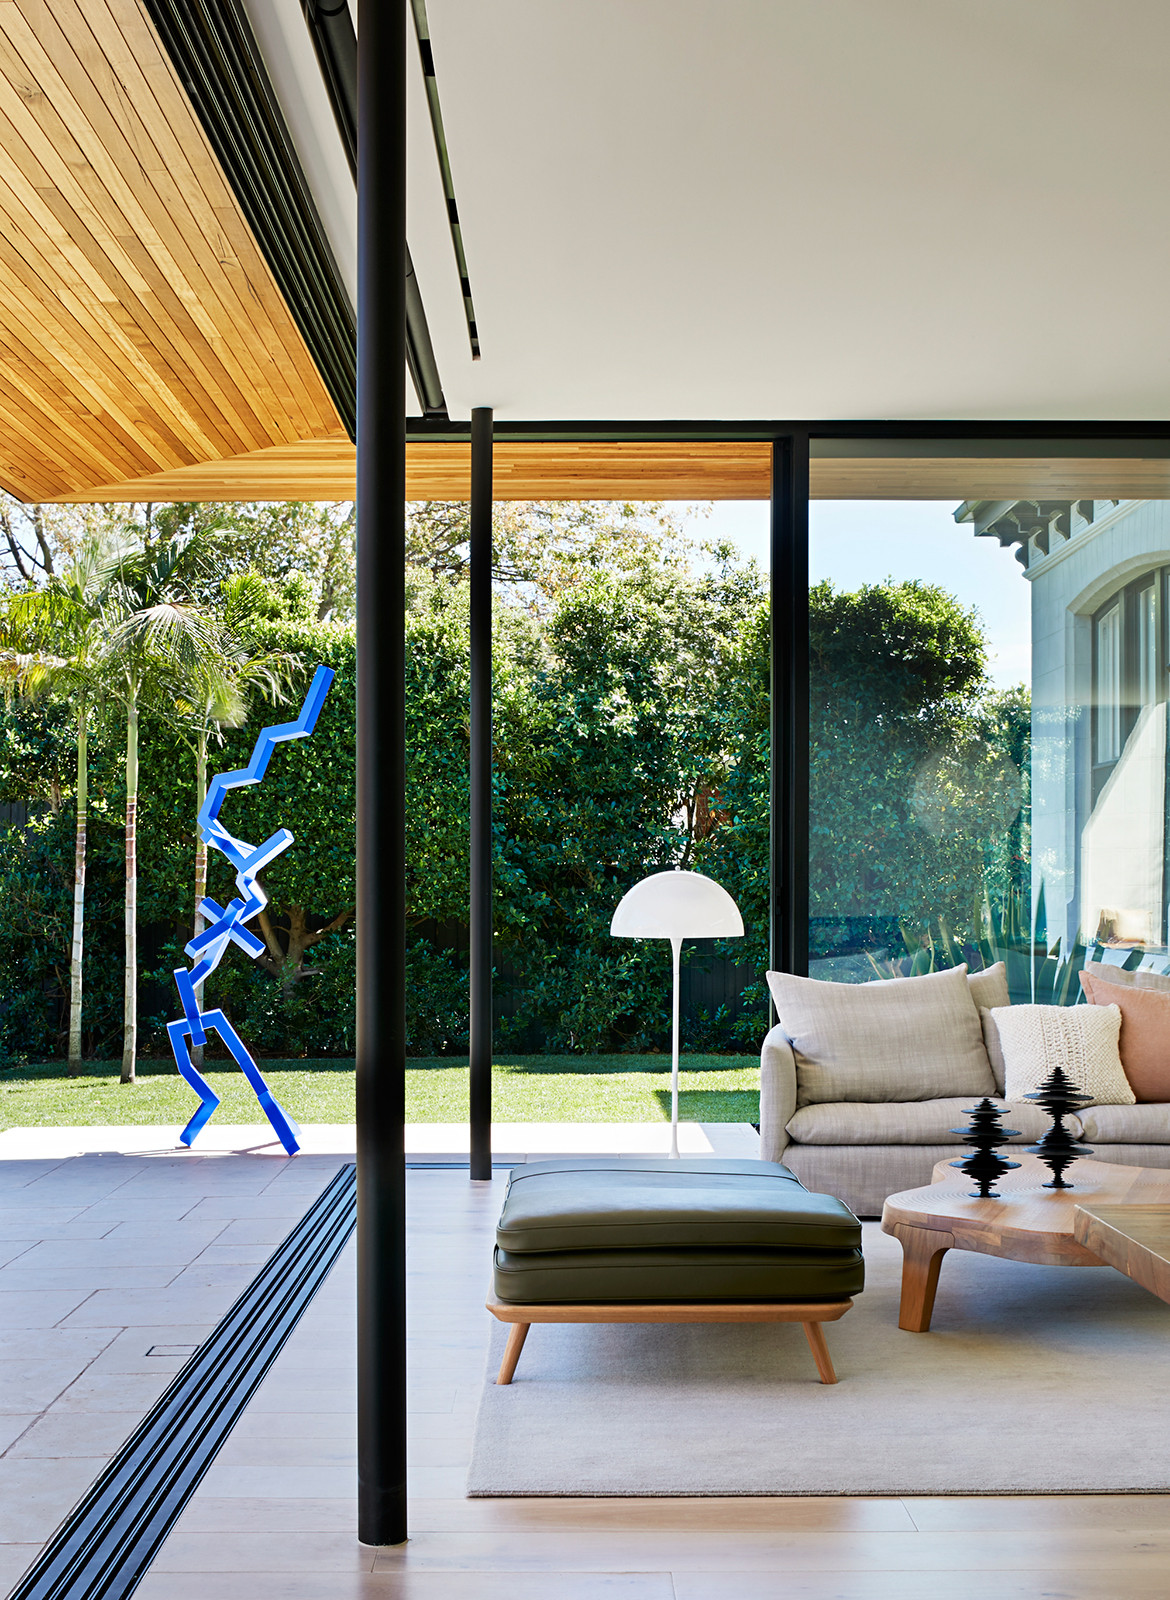 Pavilion House Robson Rak Architects CC Shannon McGrath indoor outdoor